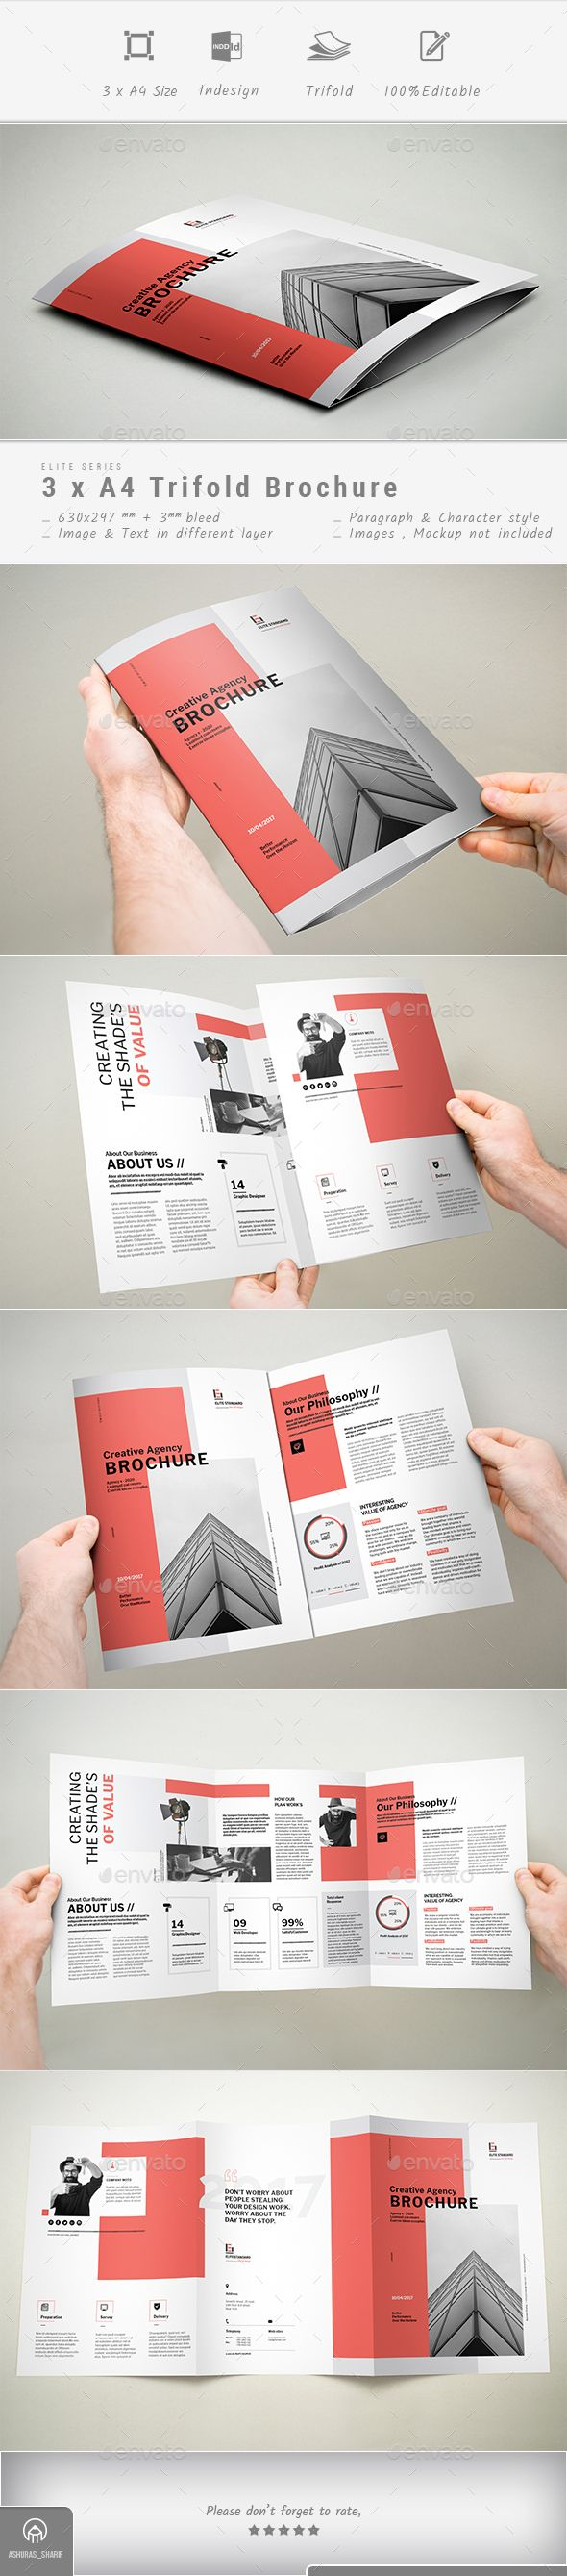 Trifold Brochure - Corporate Brochures Download here : https://graphicriver.net/item/trifold-brochure/19453459?s_rank=78&ref=Al-fatih